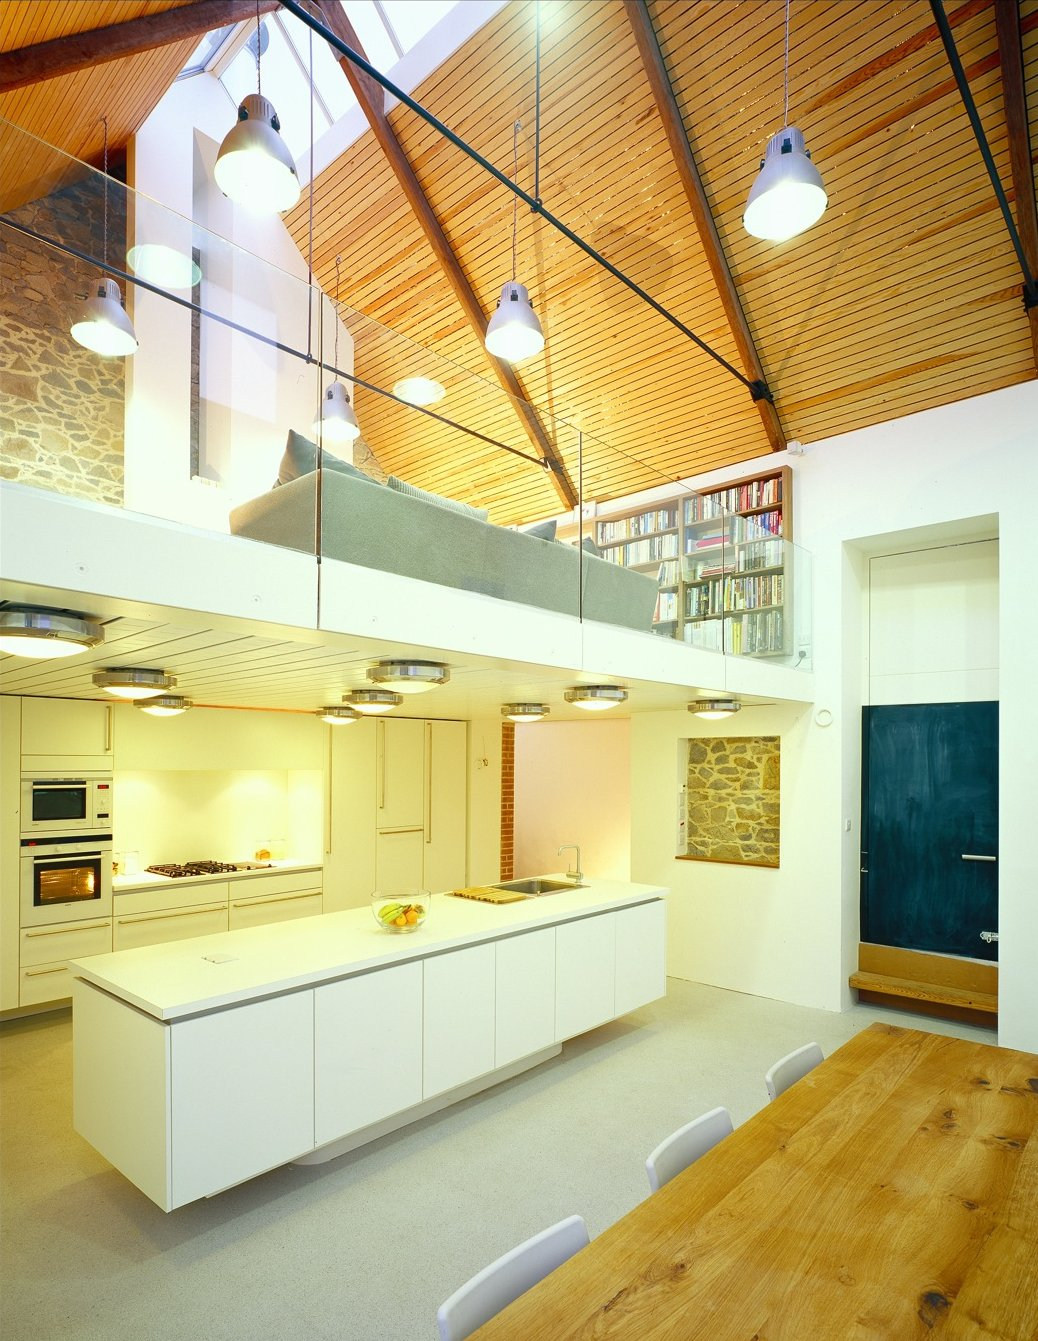 Dining Table, Kitchen, Mezzanine, Barn Conversion on the Island of Guernsey